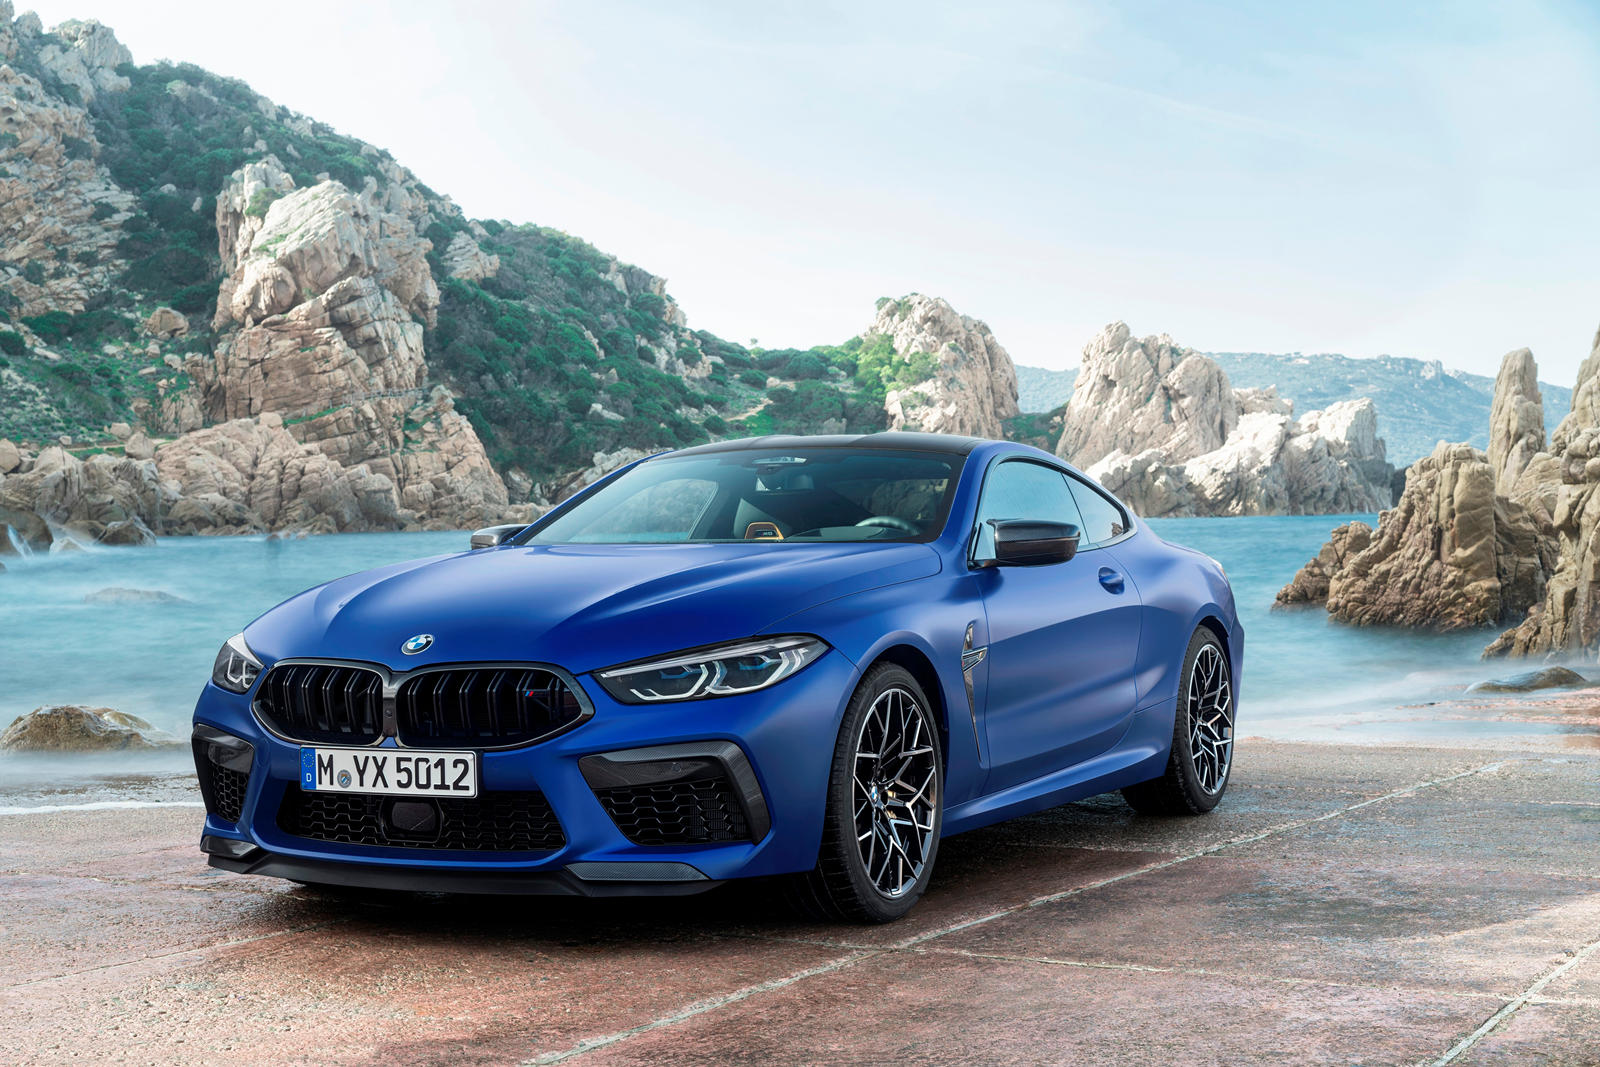 2020 Bmw M8 Coupe Review Trims Specs Price New Interior Features Exterior Design And Specifications Carbuzz